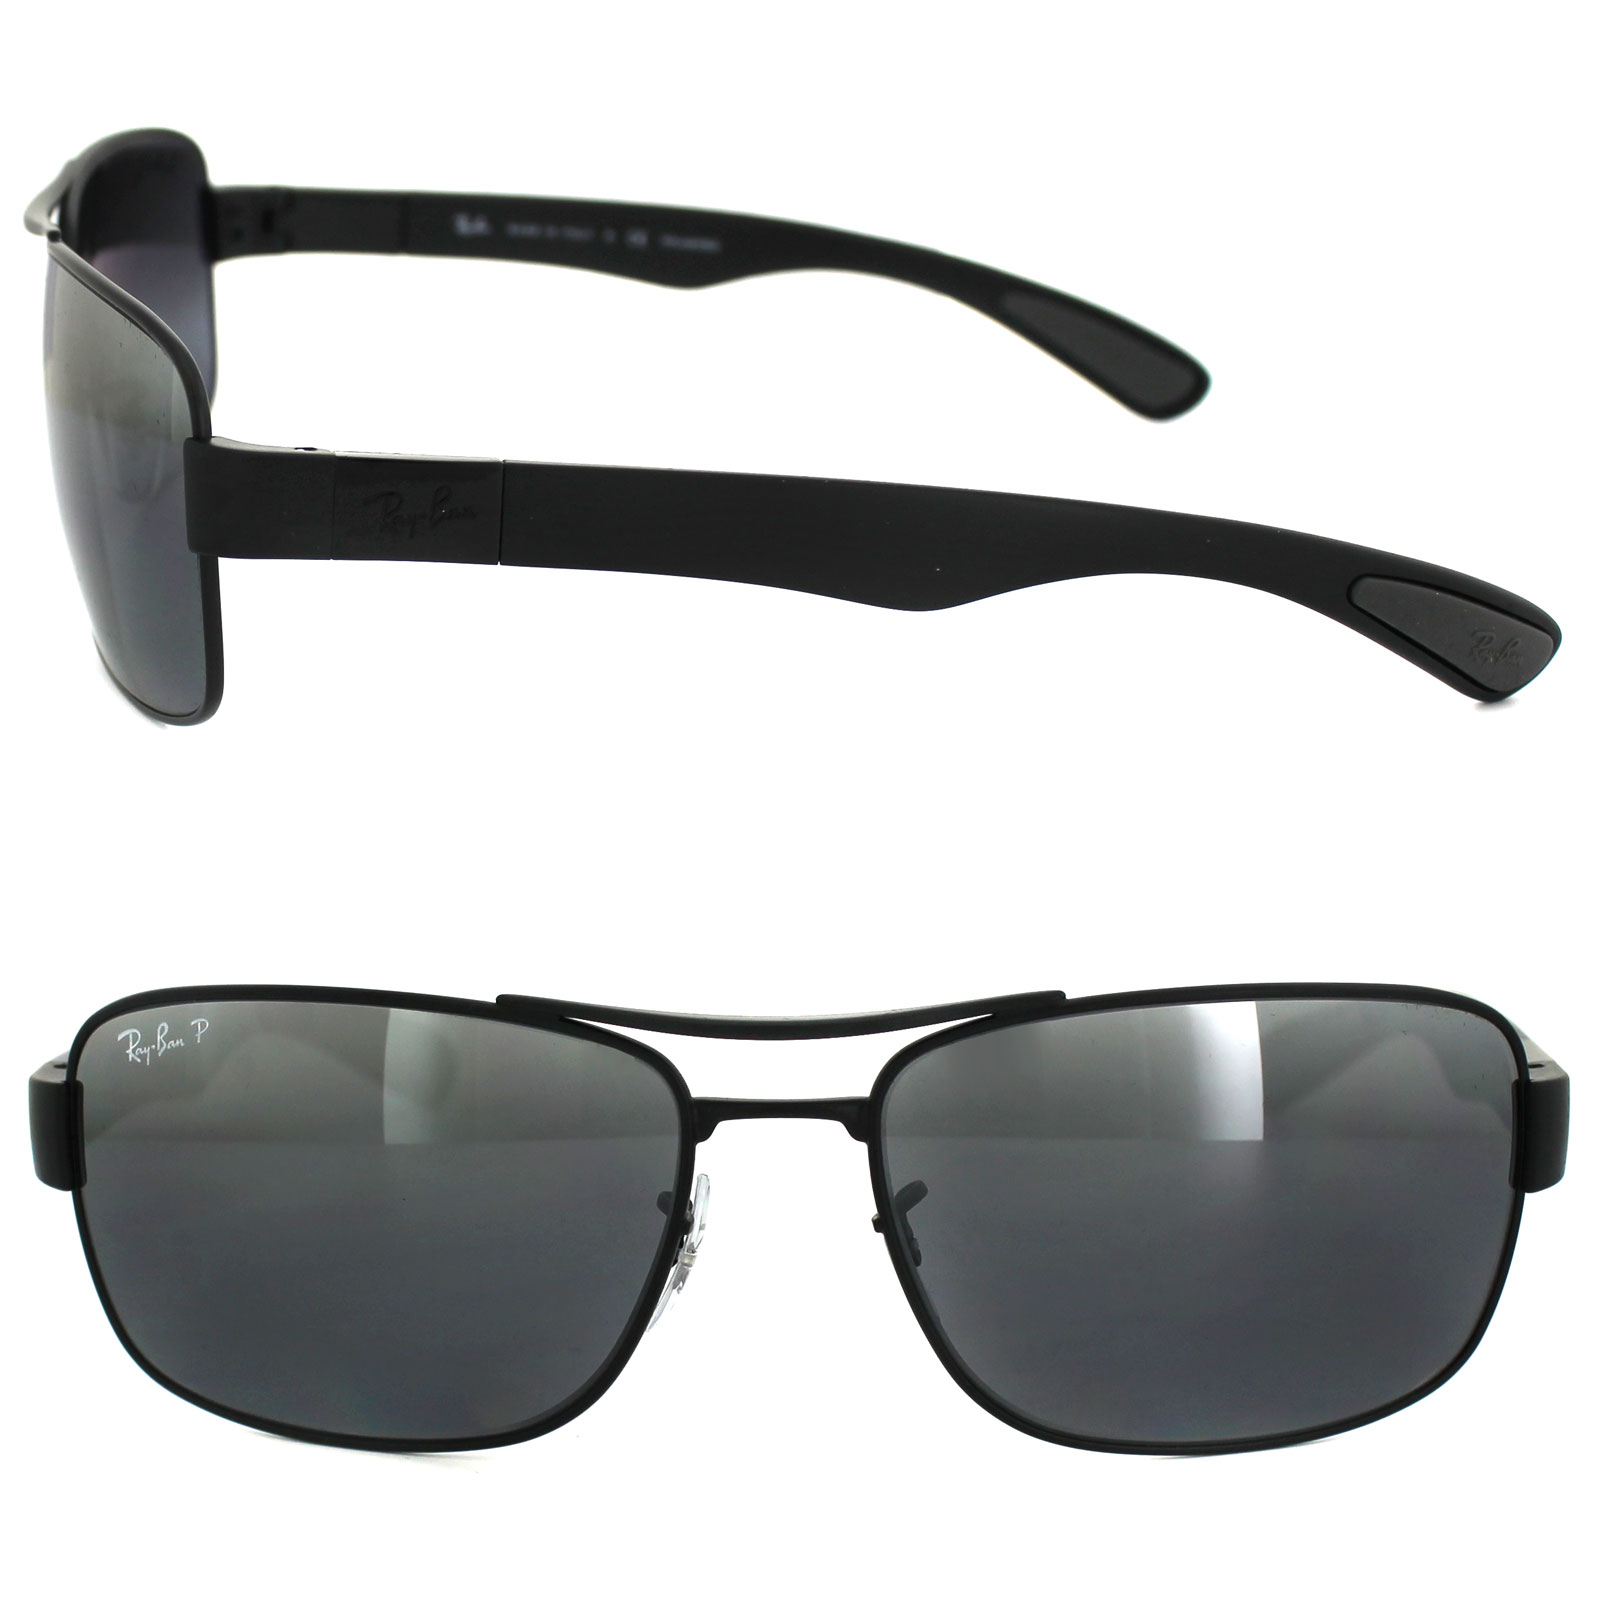 c2854af82d Sentinel Ray-Ban Sunglasses 3522 006 82 Black Silver Mirror Polarized